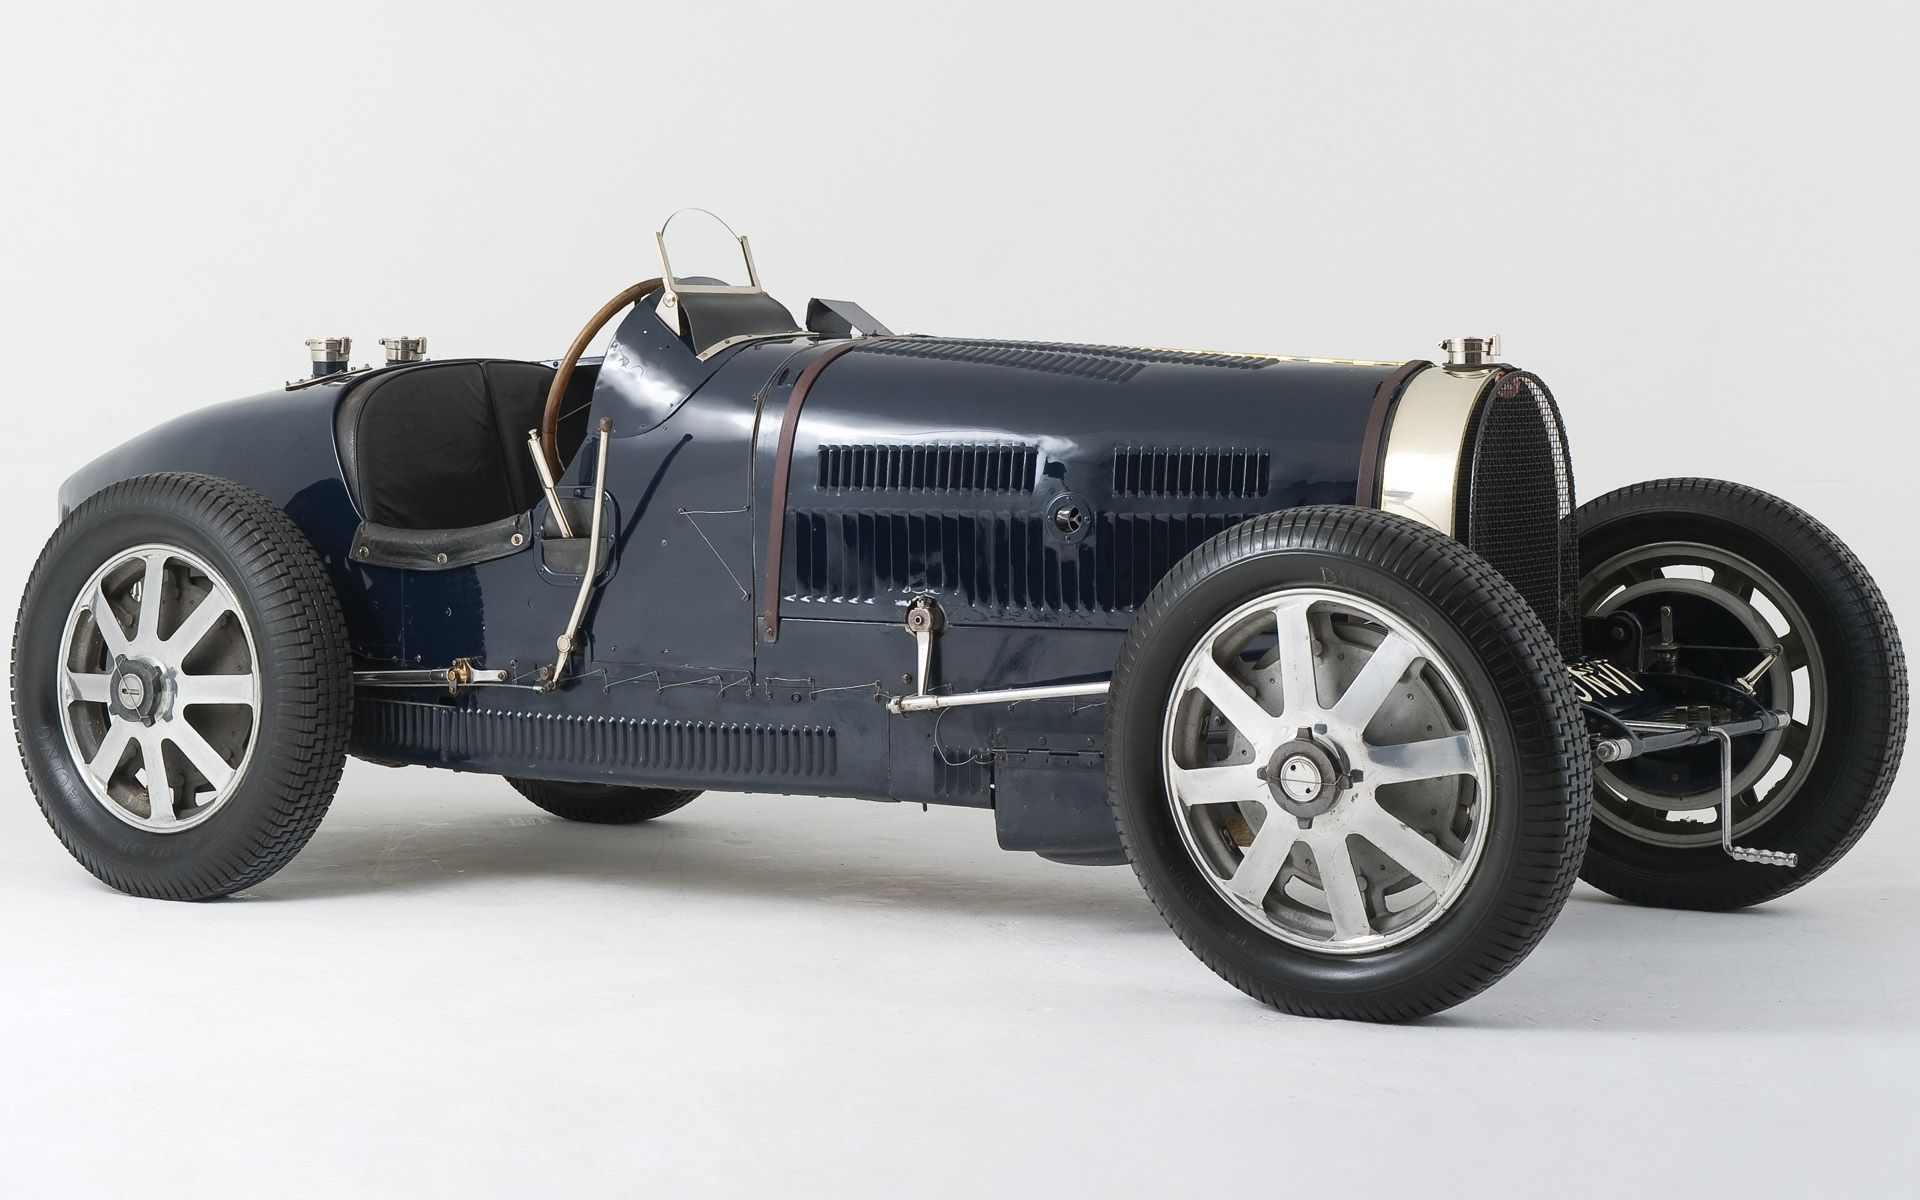 bugatti type 51 grand prix racing car 1931 34 motorsport pinterest bugatti grand prix and. Black Bedroom Furniture Sets. Home Design Ideas